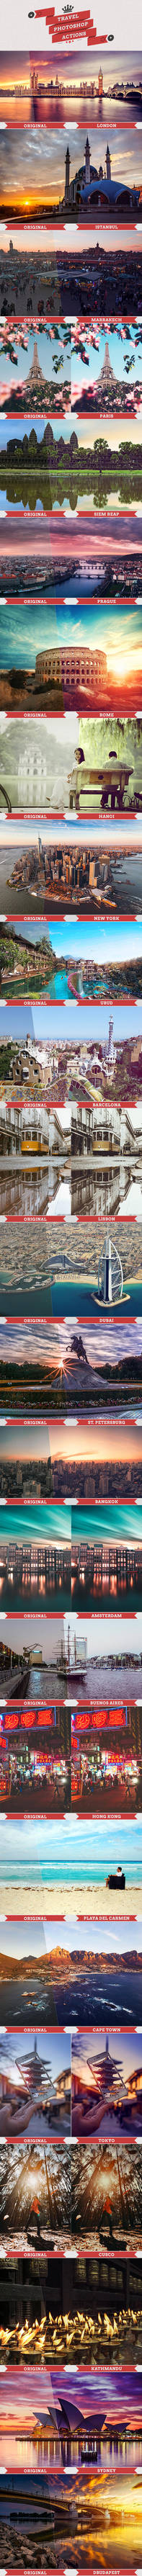 25 Travel Actions by ResourcesArt